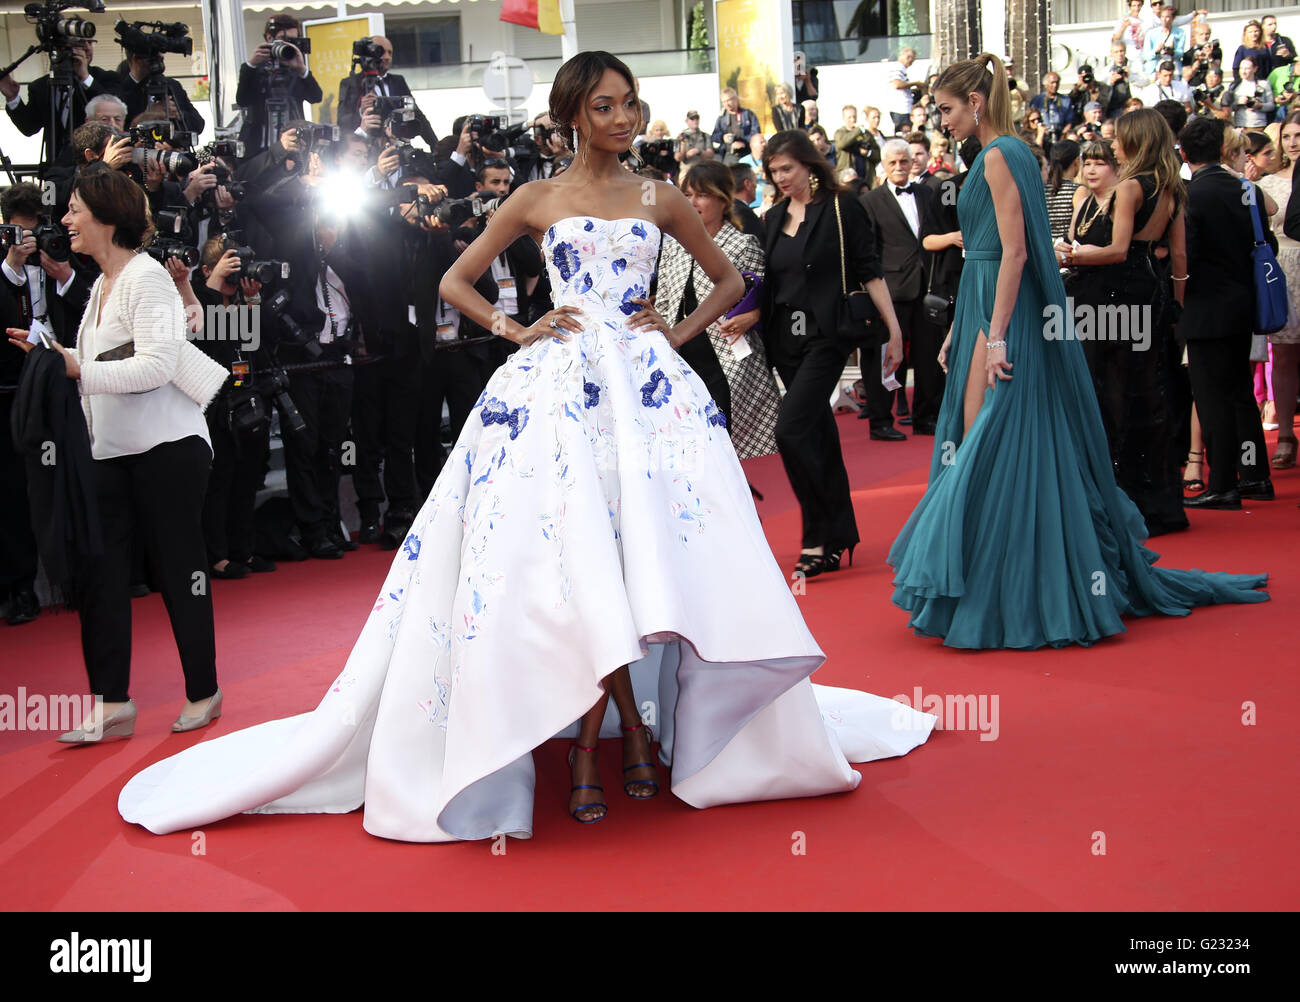 Model Jourdan Dunn poses for photographers upon arrival at the screening of the film La Fille Inconnue (The Unkown - Stock Image